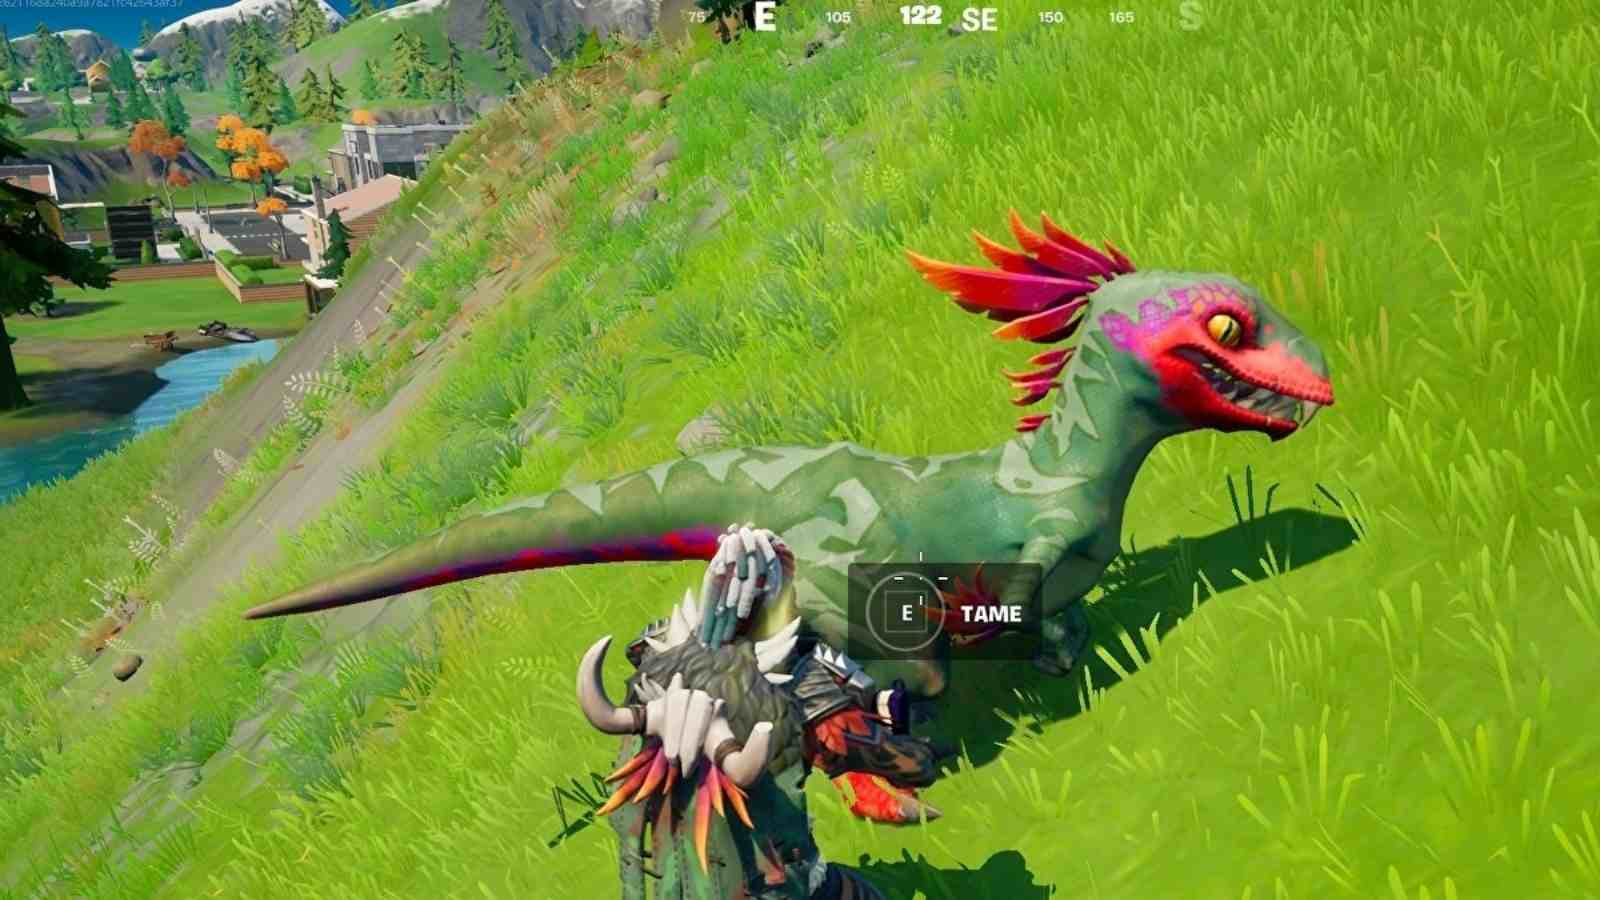 Fortnite Sky Wars Dinosaurs: New Creative Map Code and All About it